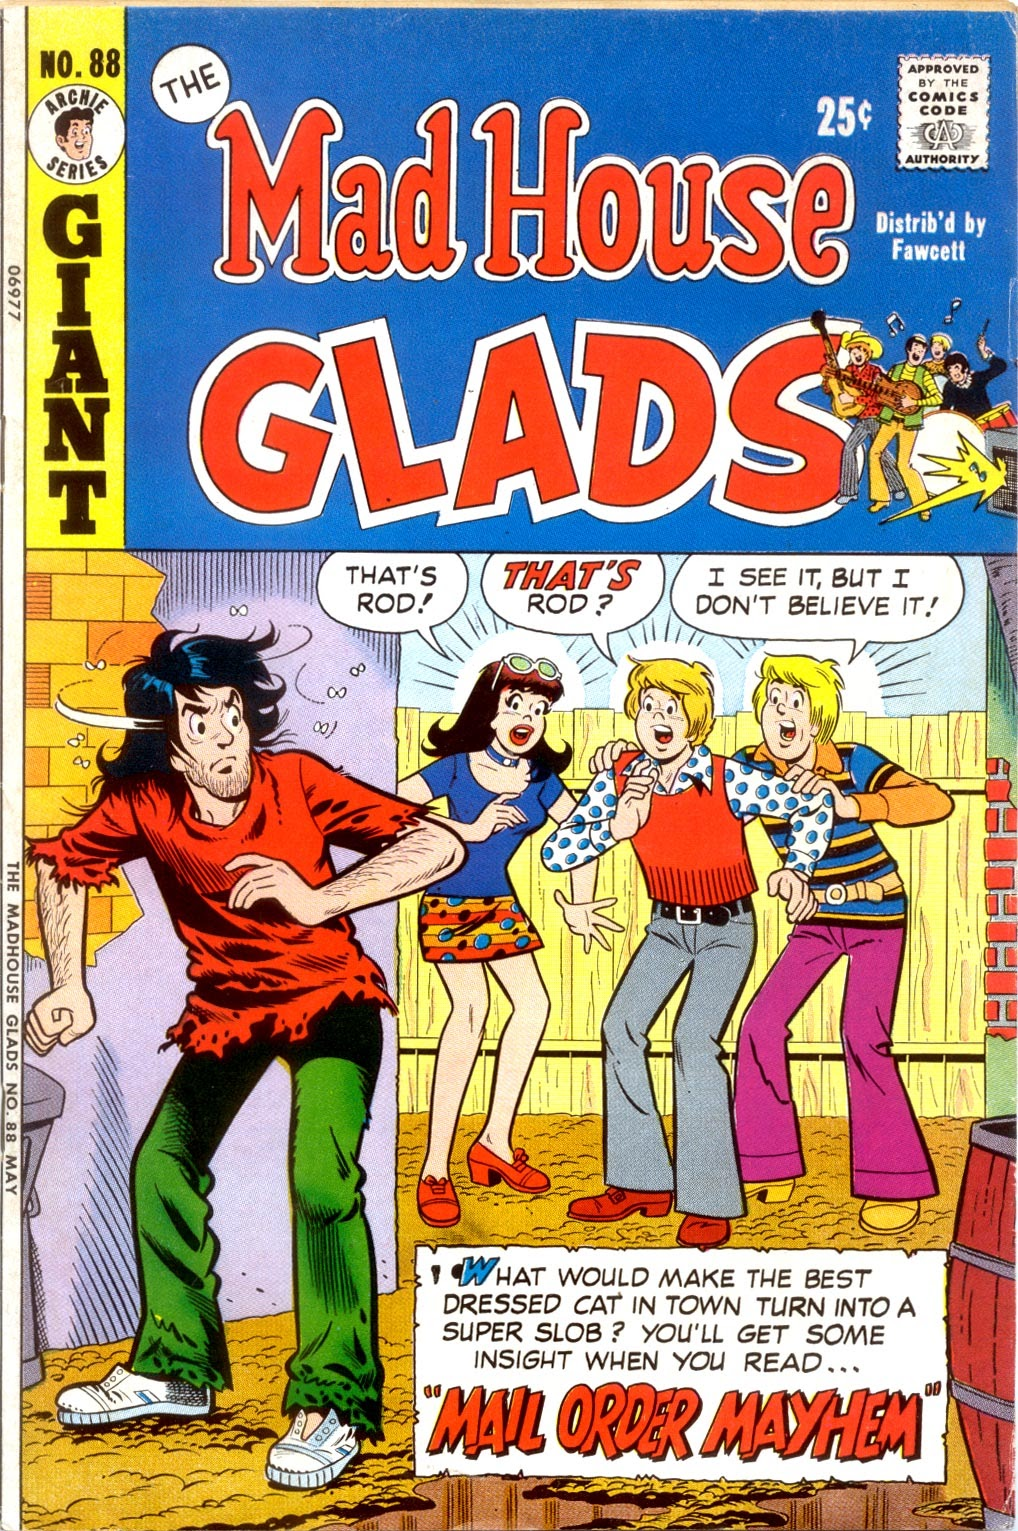 Read online The Mad House Glads comic -  Issue #88 - 1